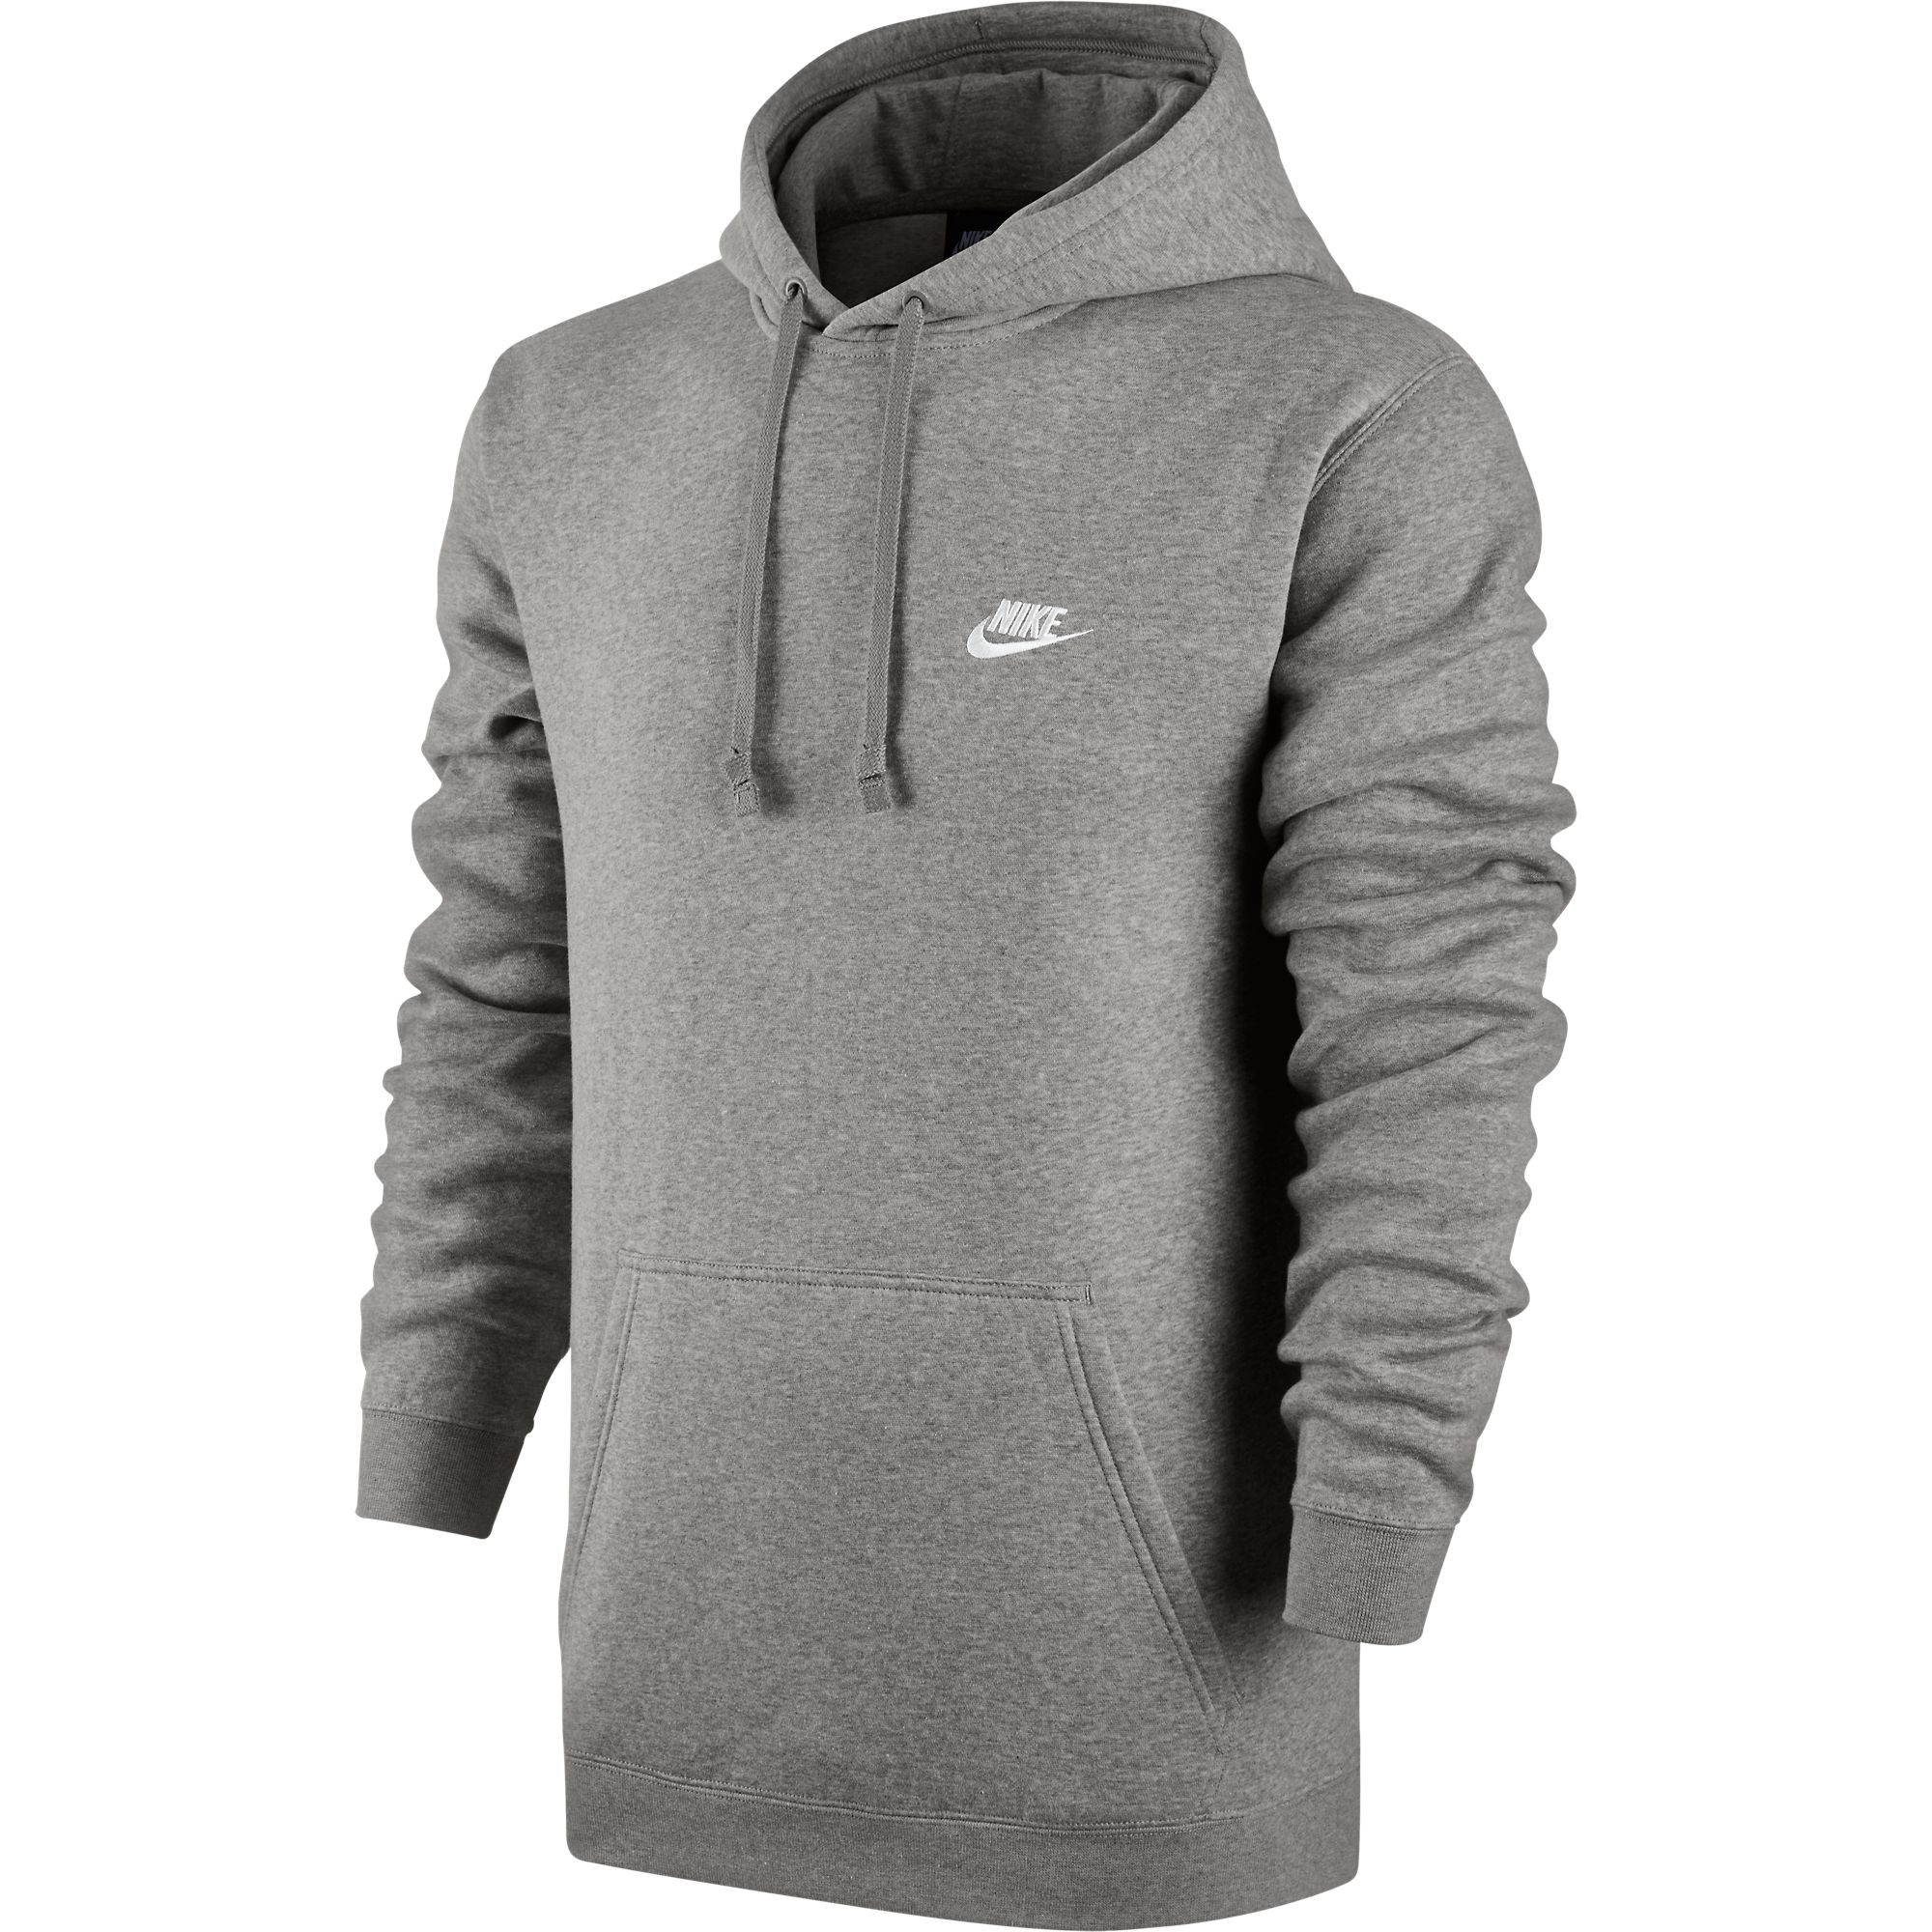 Details about Nike Club Fleece Pullover Longsleeve Men s Hoodie Grey White  804346-063 1bde1874659a